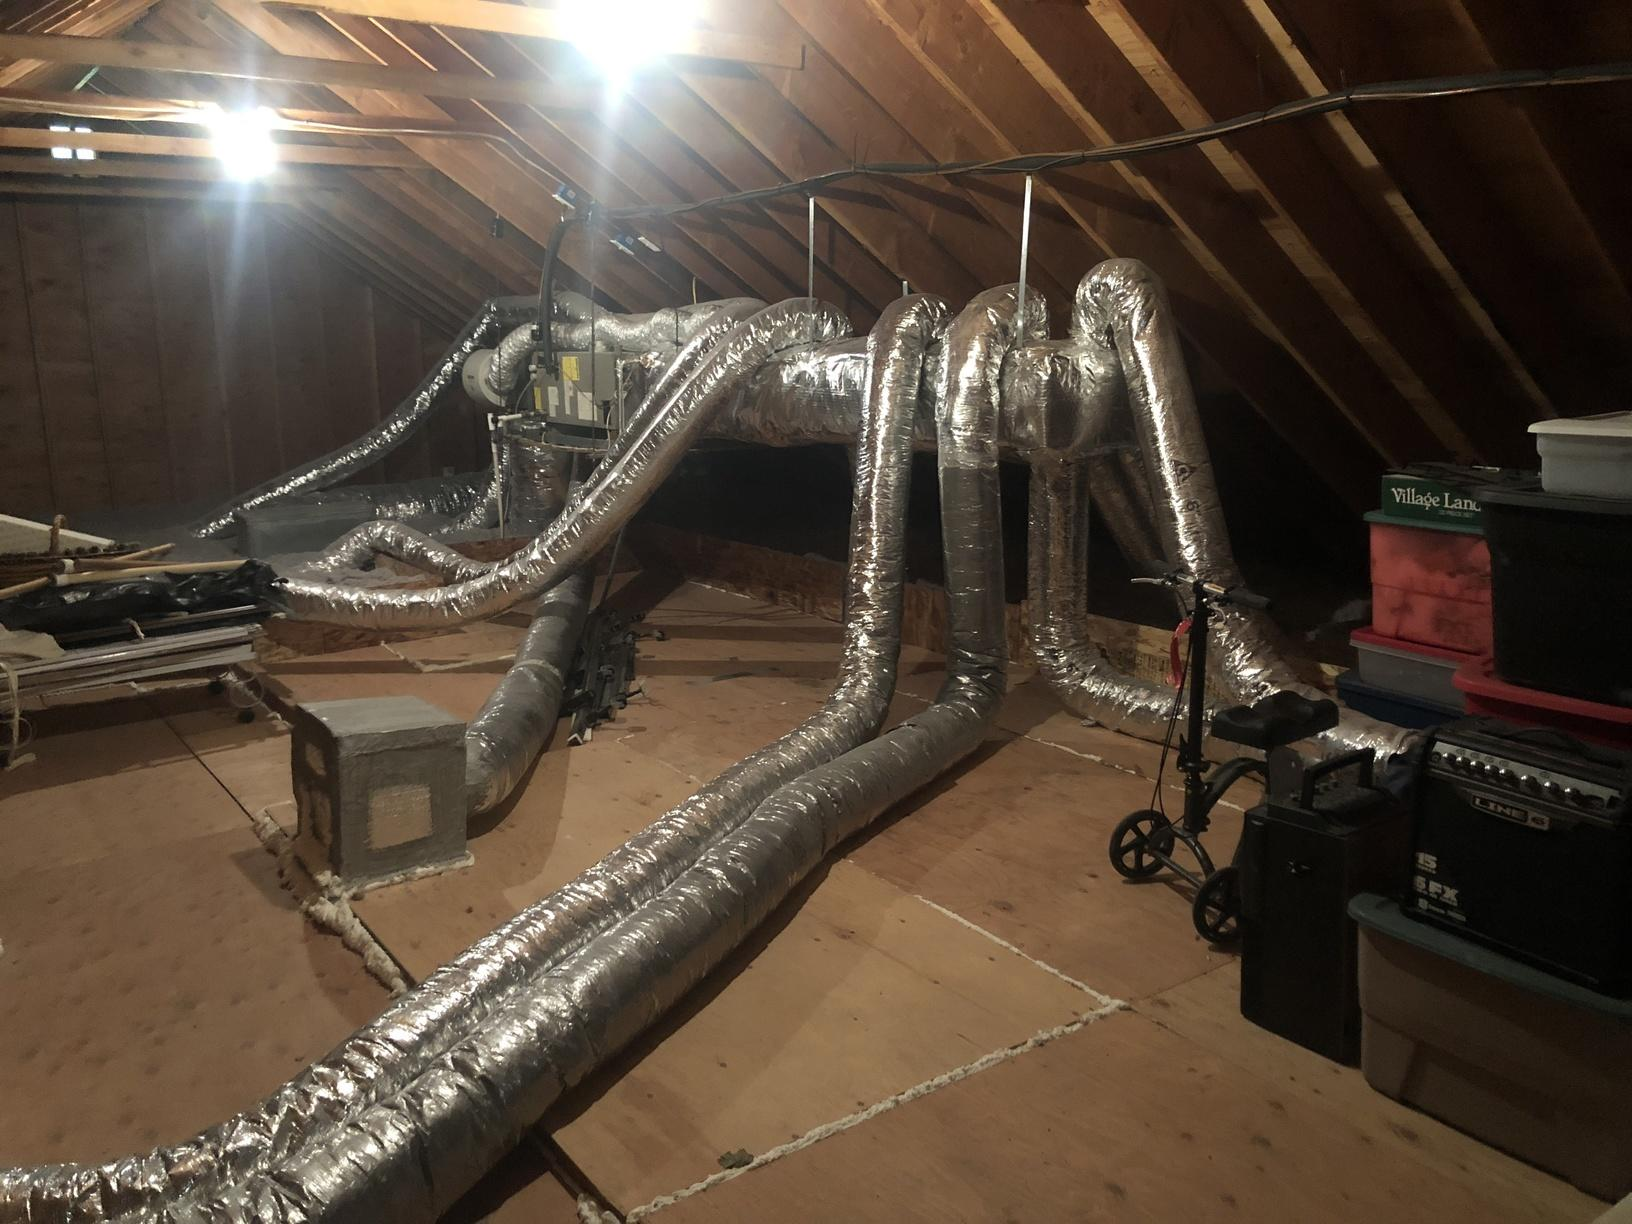 Insulated Duct Wrap,Mattituck NY - After Photo